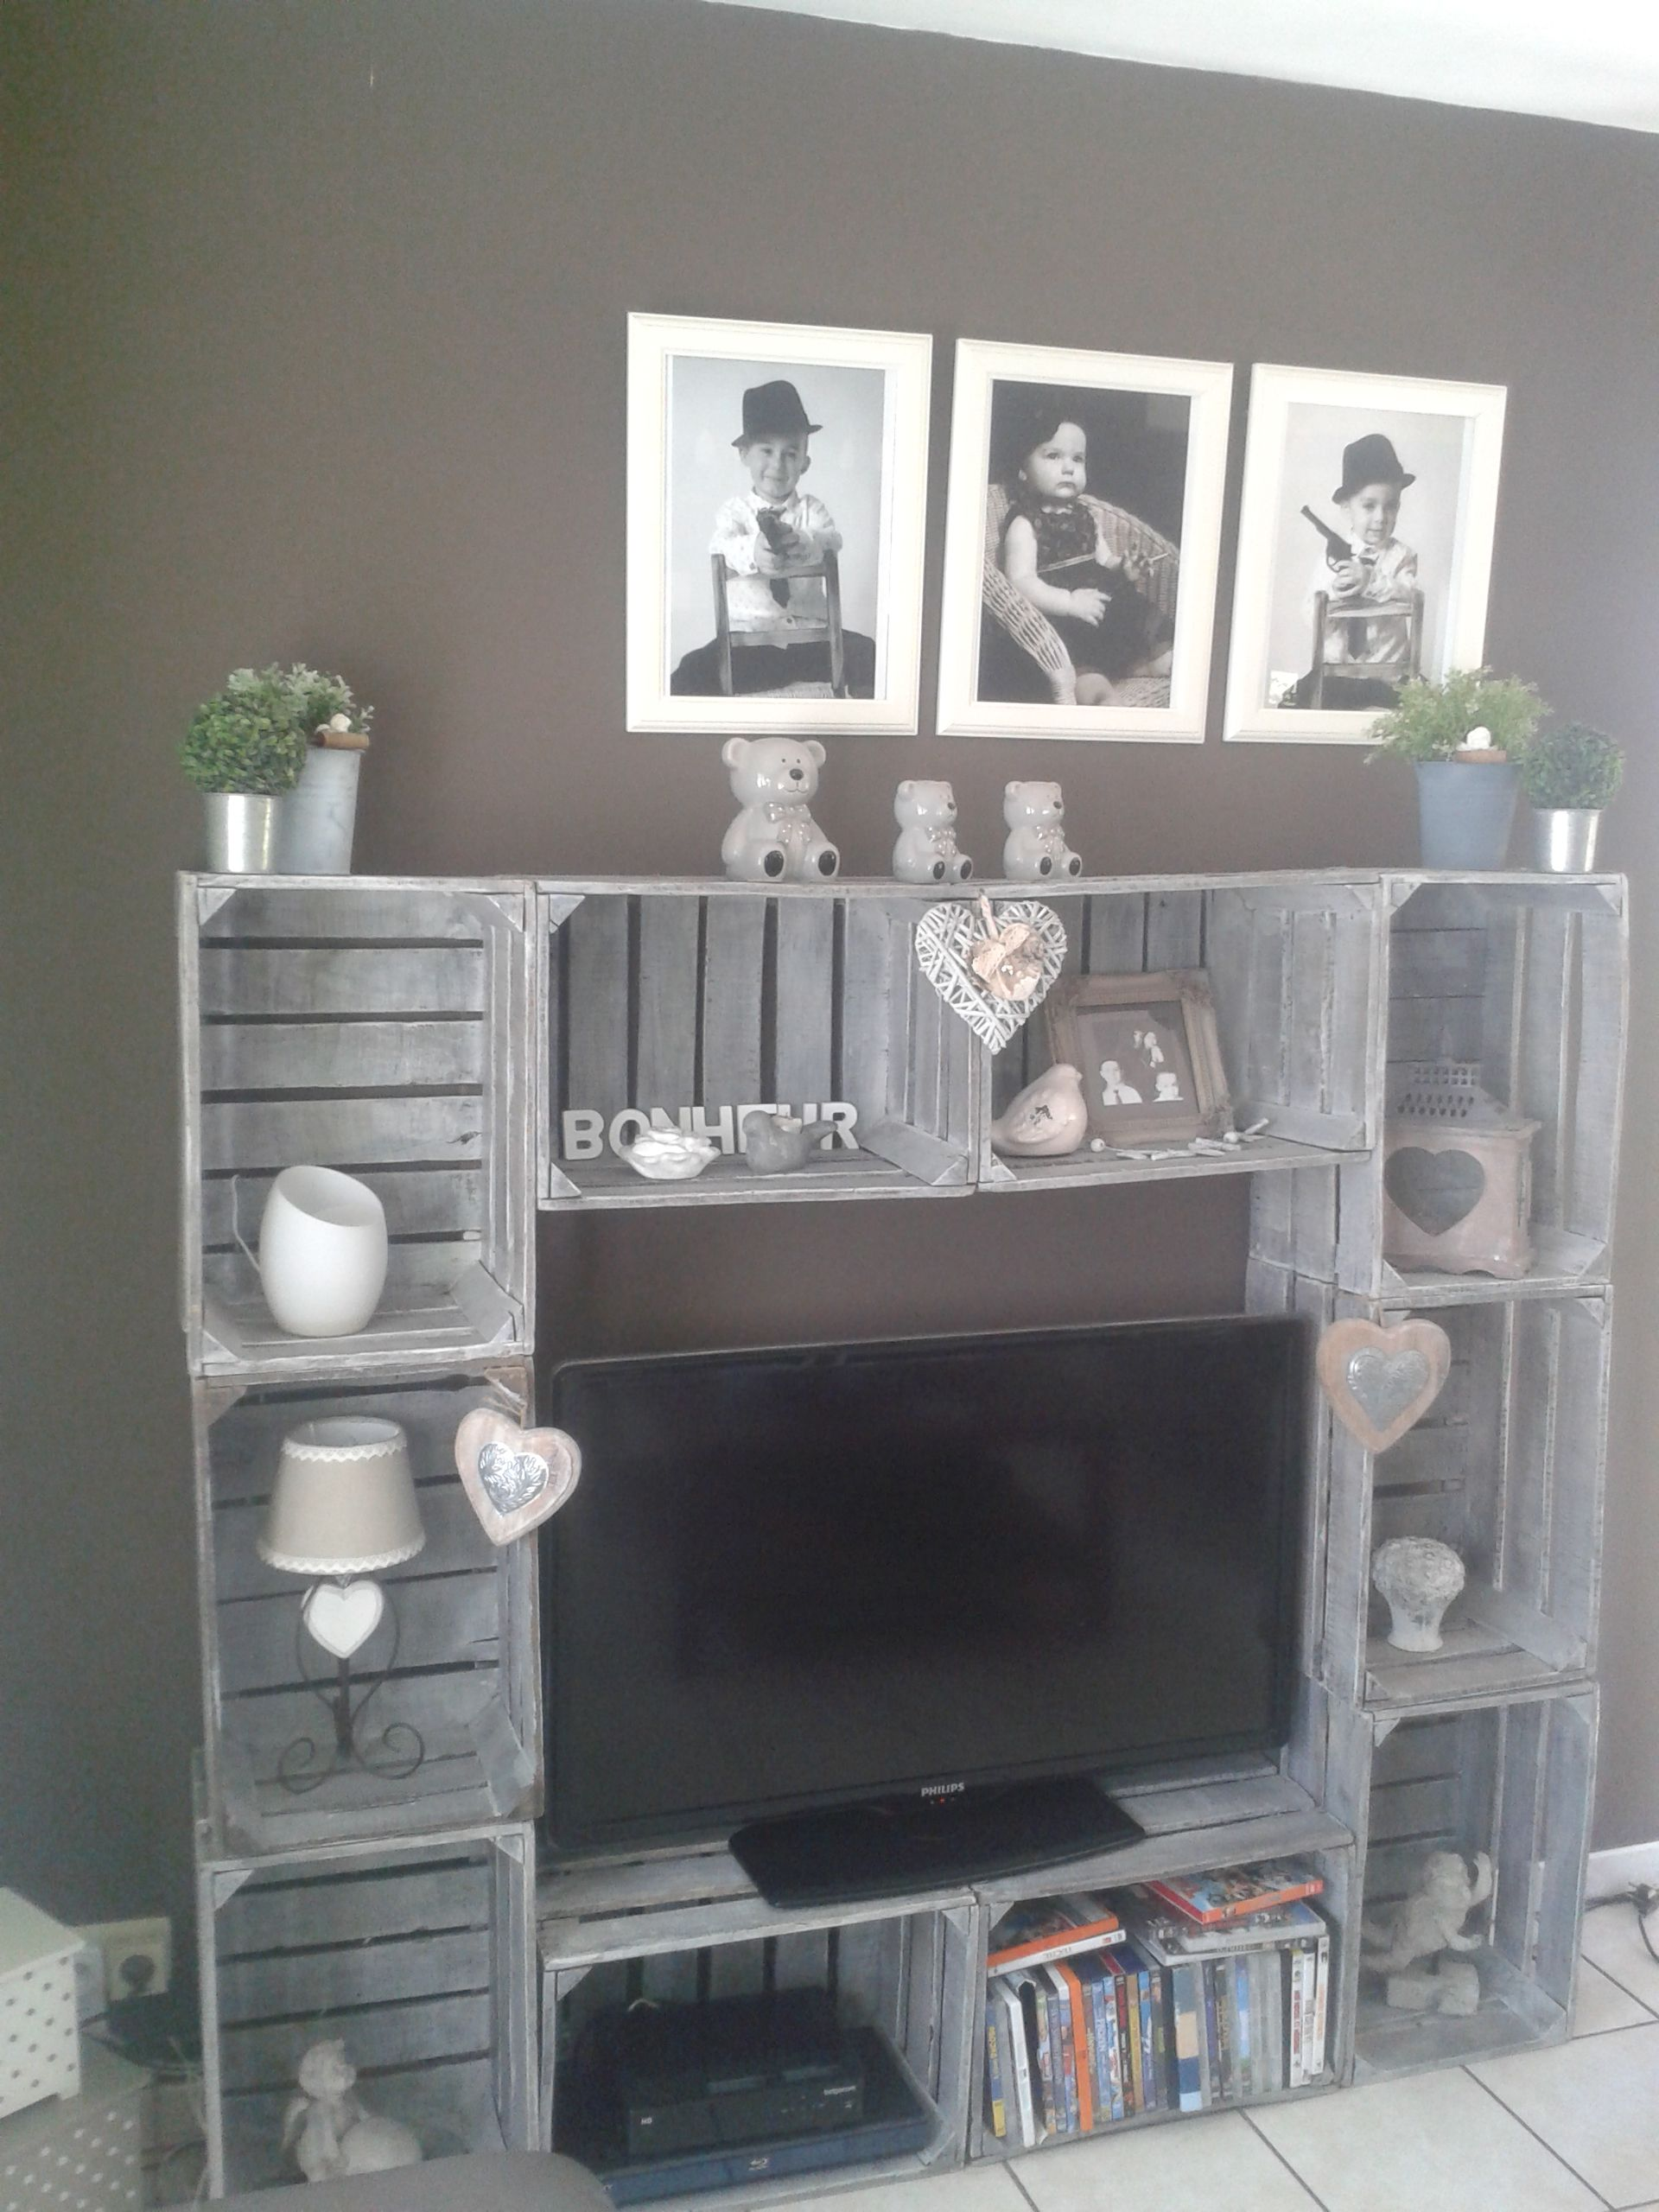 meuble t l by sophie d fabriqu avec des caisses cagettes en bois patin es. Black Bedroom Furniture Sets. Home Design Ideas